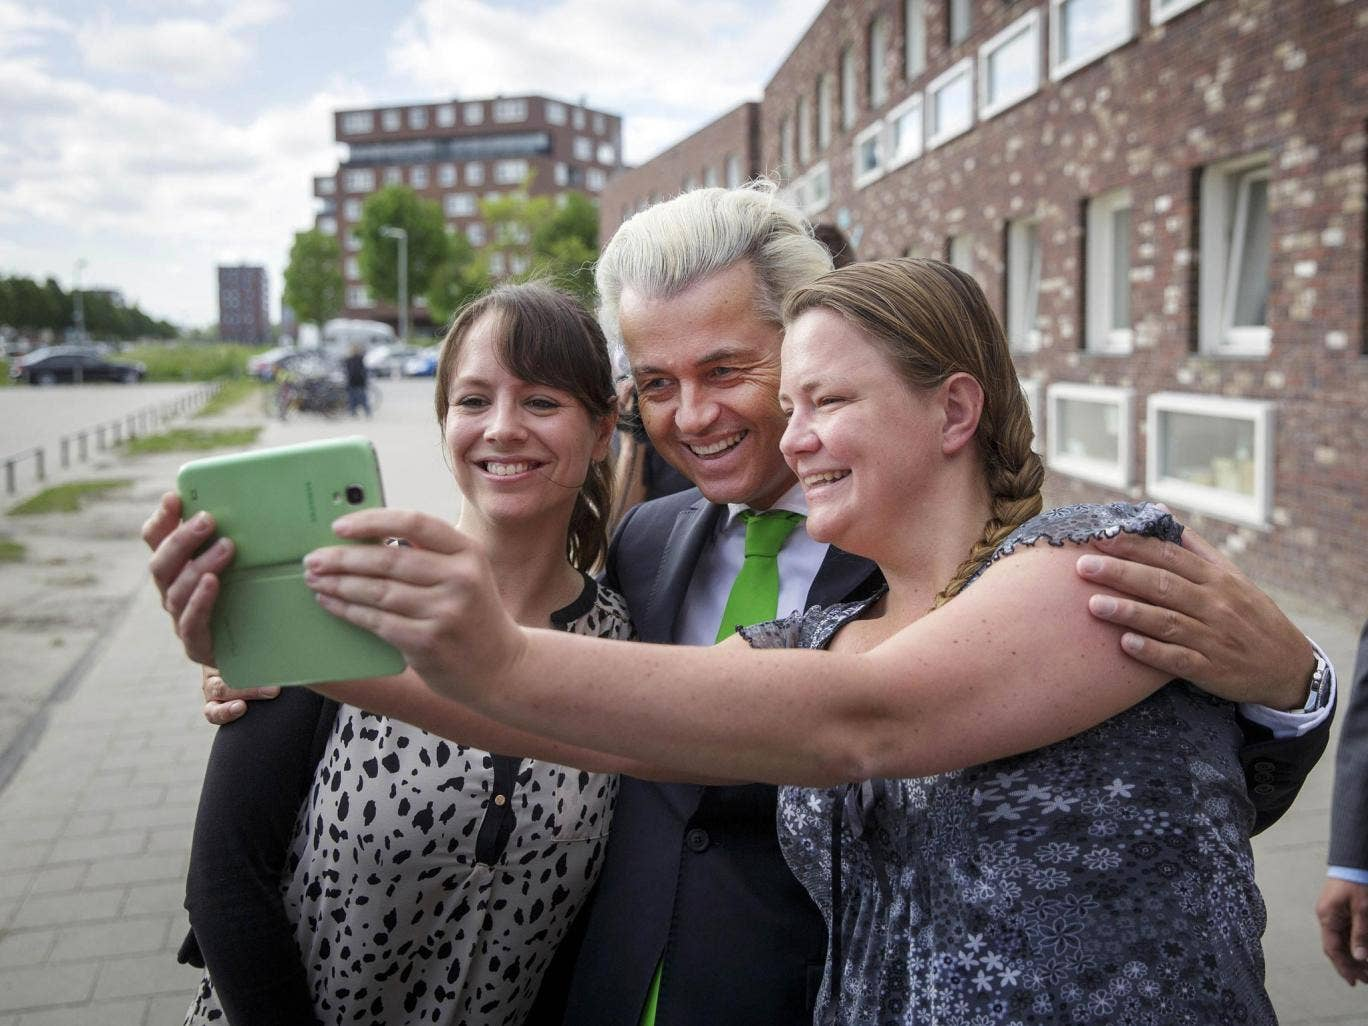 Geert Wilders, poses with supporters in The Hague